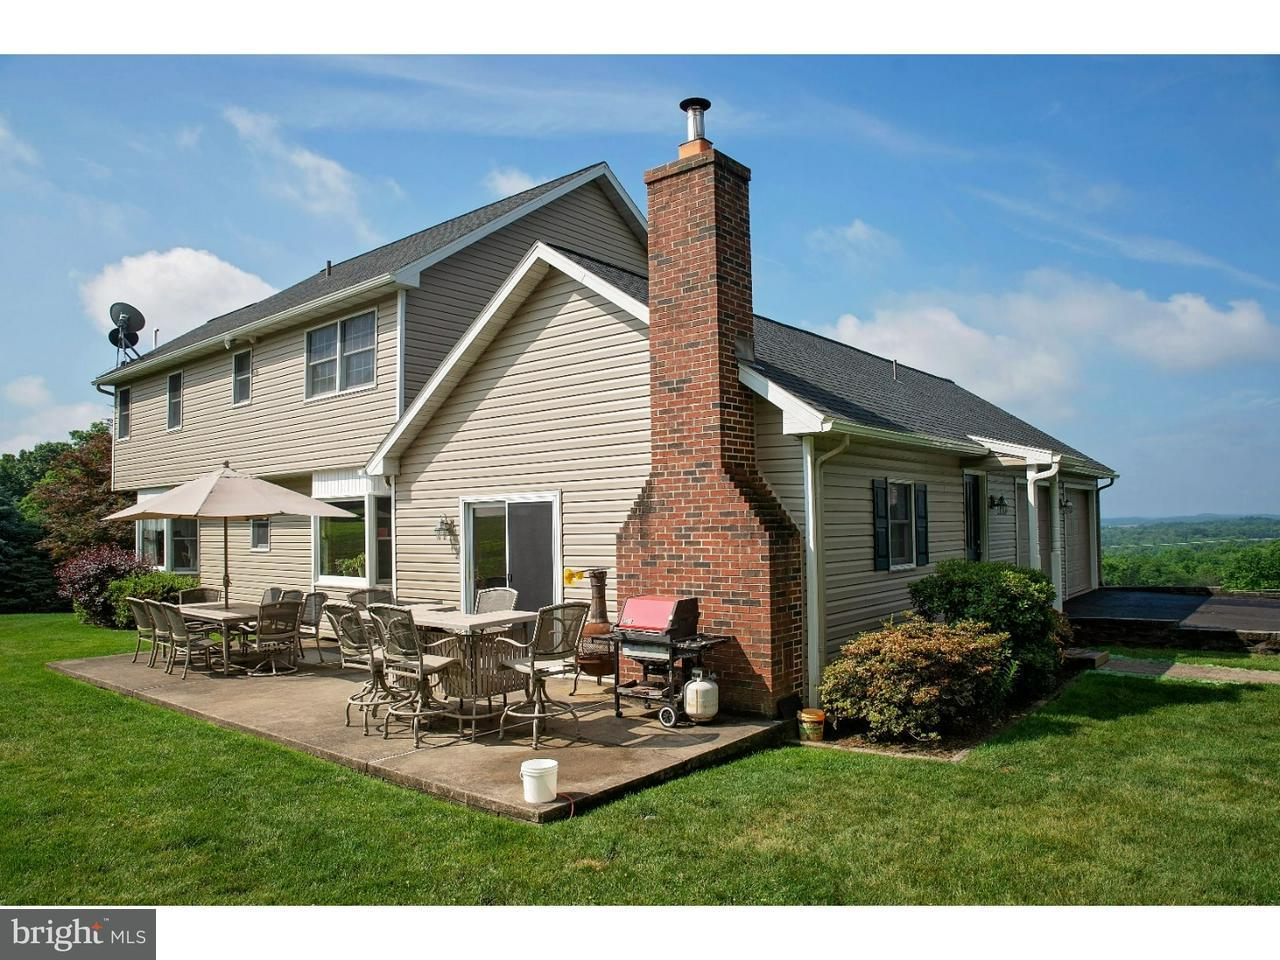 191 HUMMELS HILL RD, KUTZTOWN - Listed at $399,900,